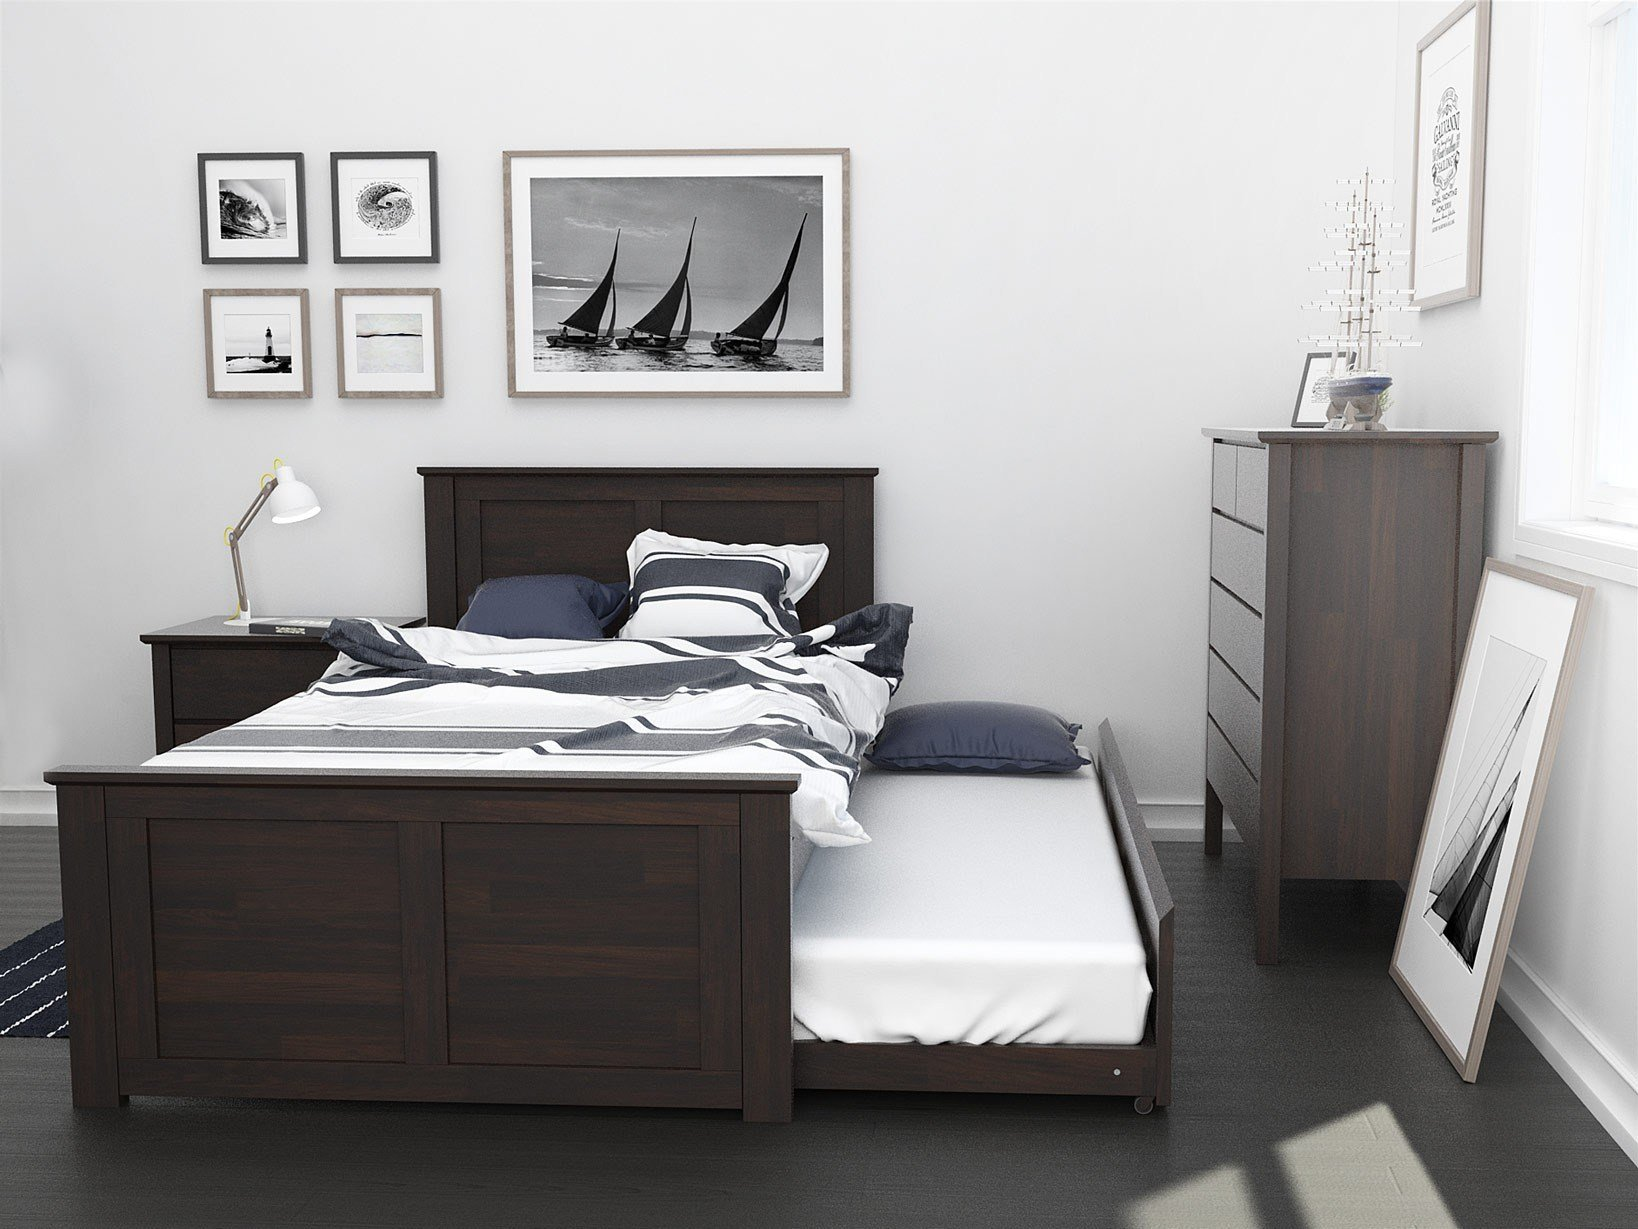 Best King Single Bedroom Suites With Trundle 50 75 Off Sale With Pictures